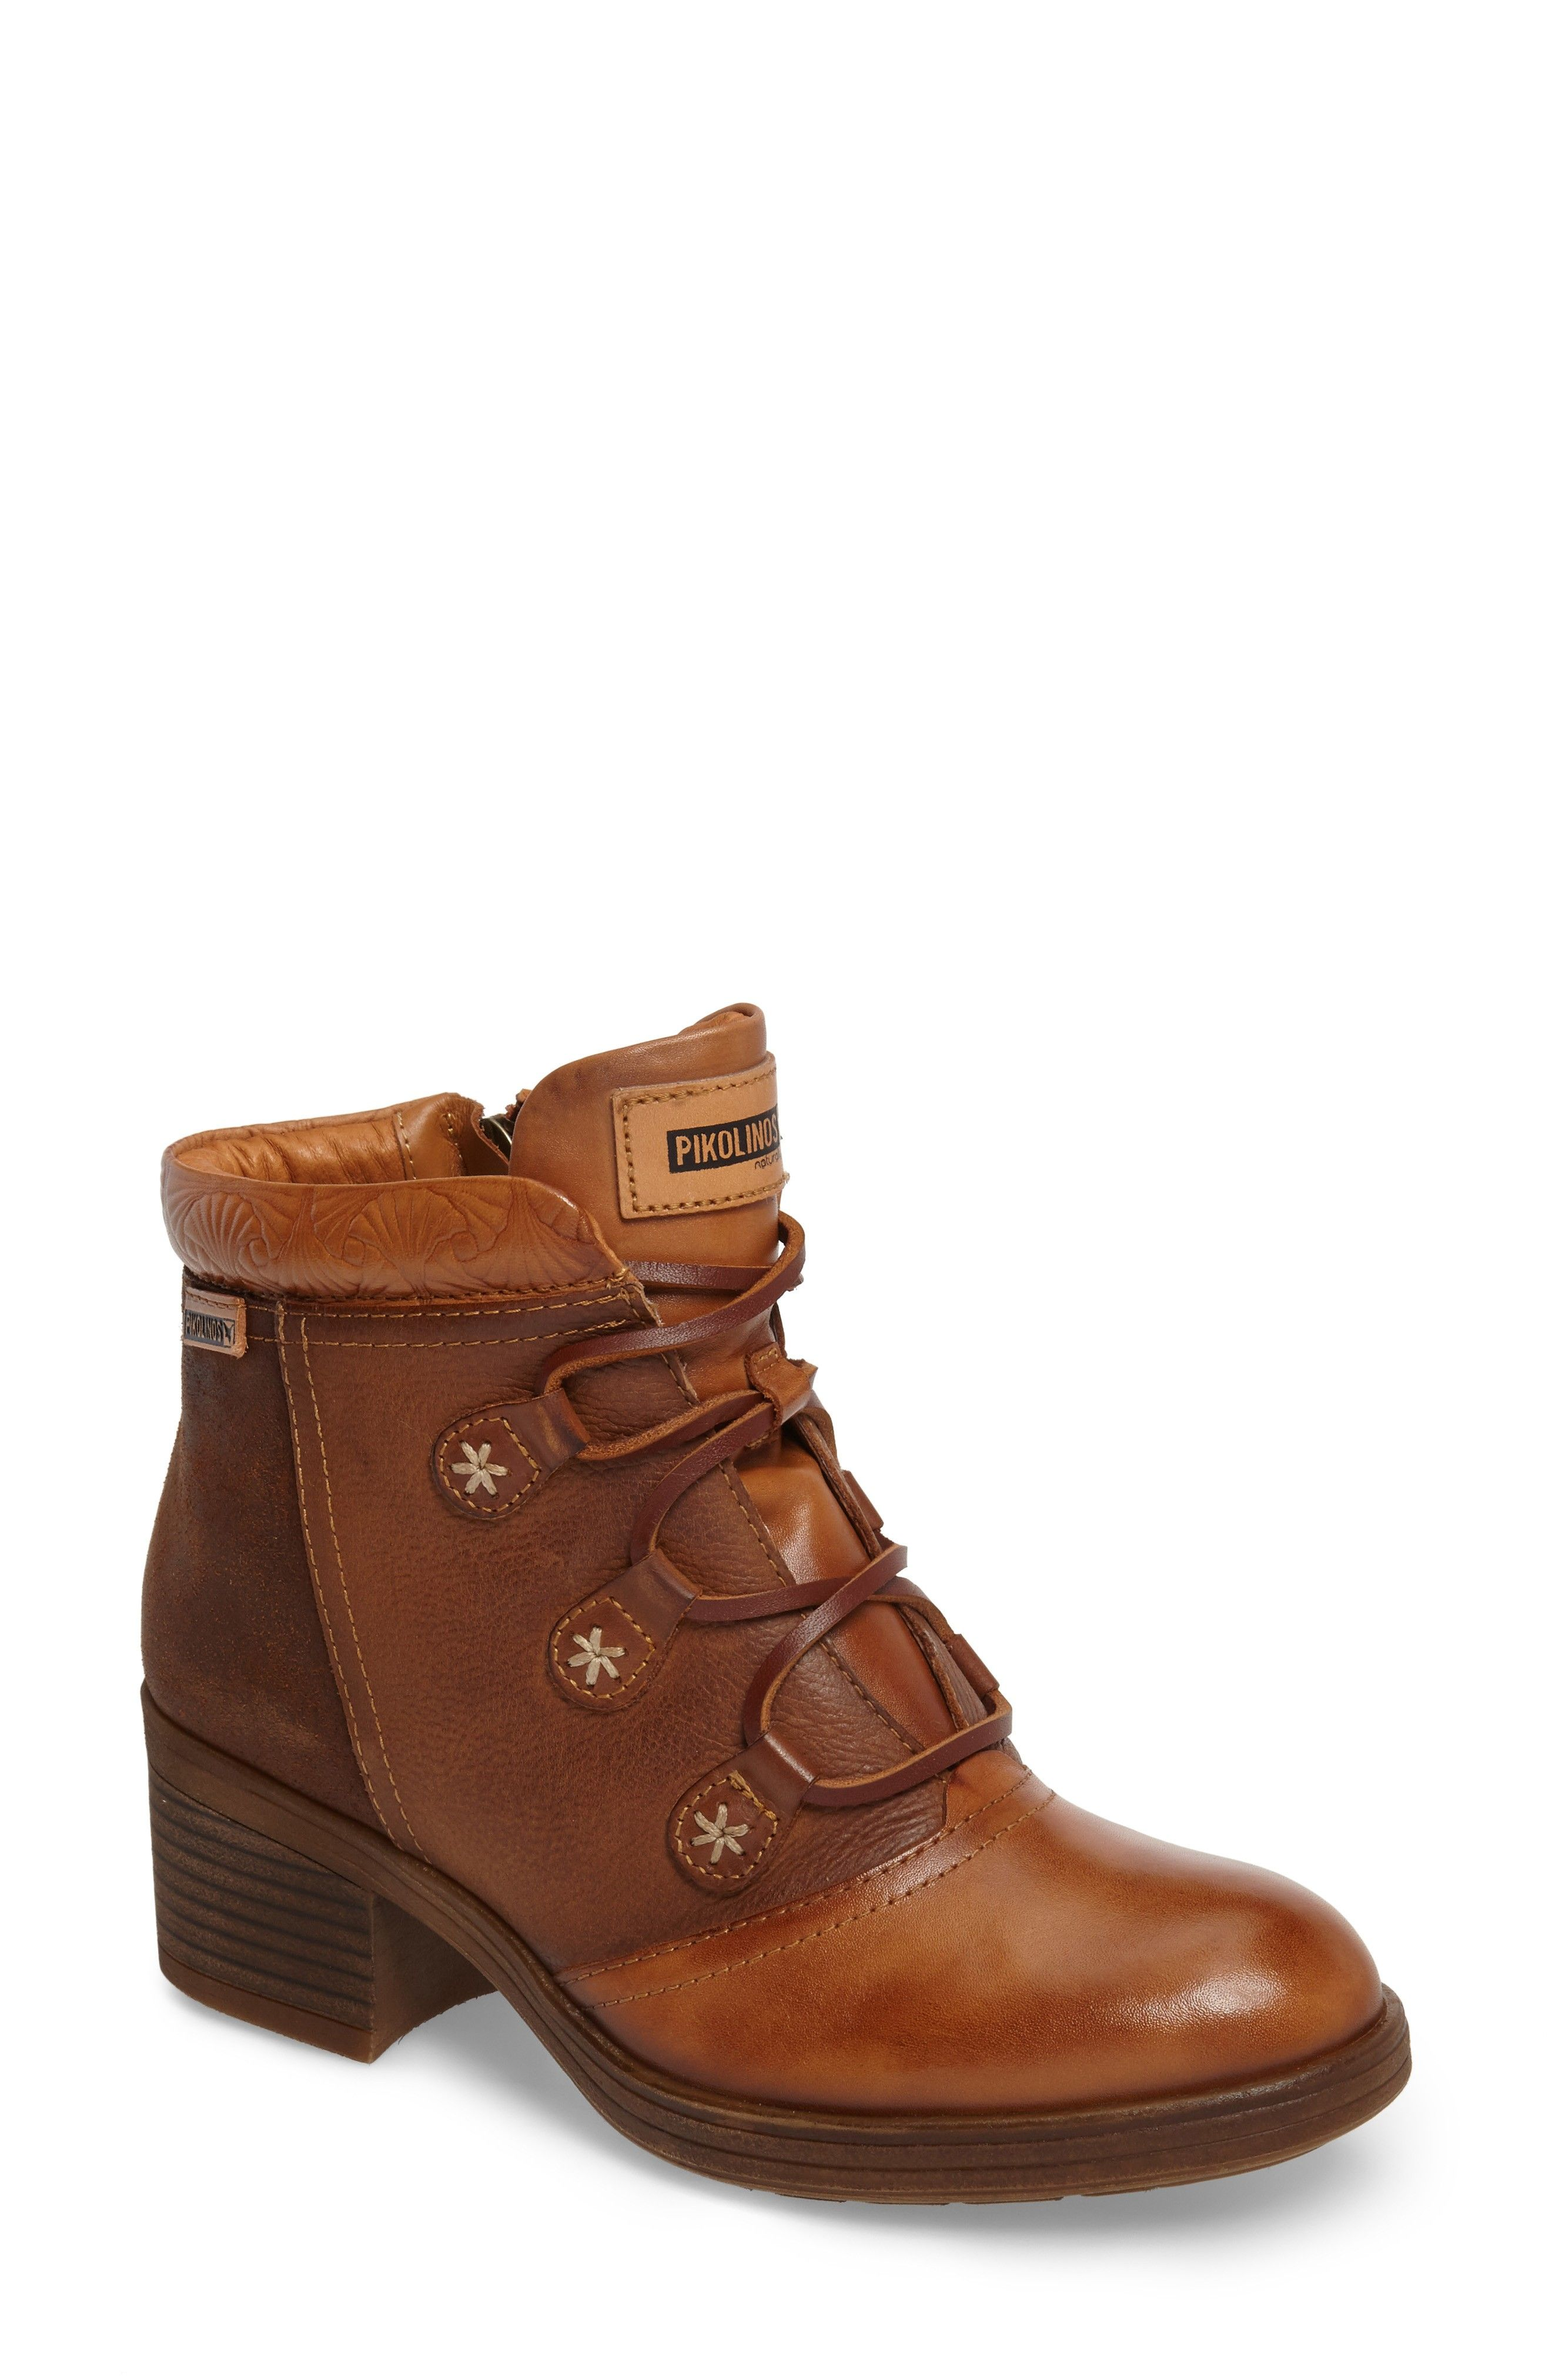 Pikolinos Women's Lyon Lace-Up Boot